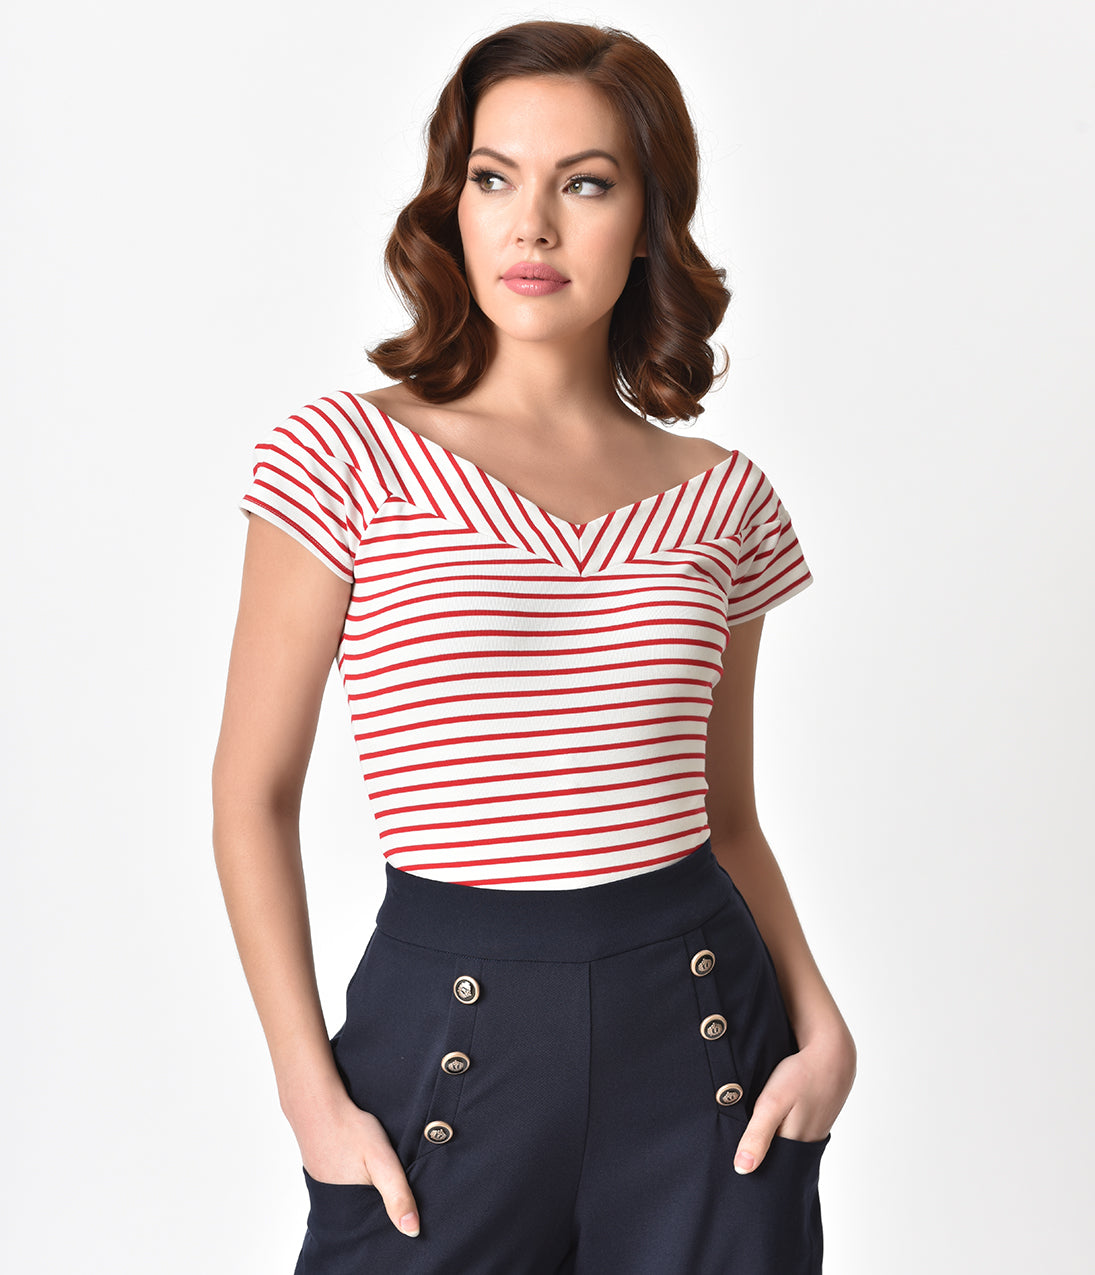 1950s Rockabilly & Pin Up Tops, Blouses, Shirts Unique Vintage 1950S Style White  Red Striped Stretch Knit Deena Top $44.00 AT vintagedancer.com